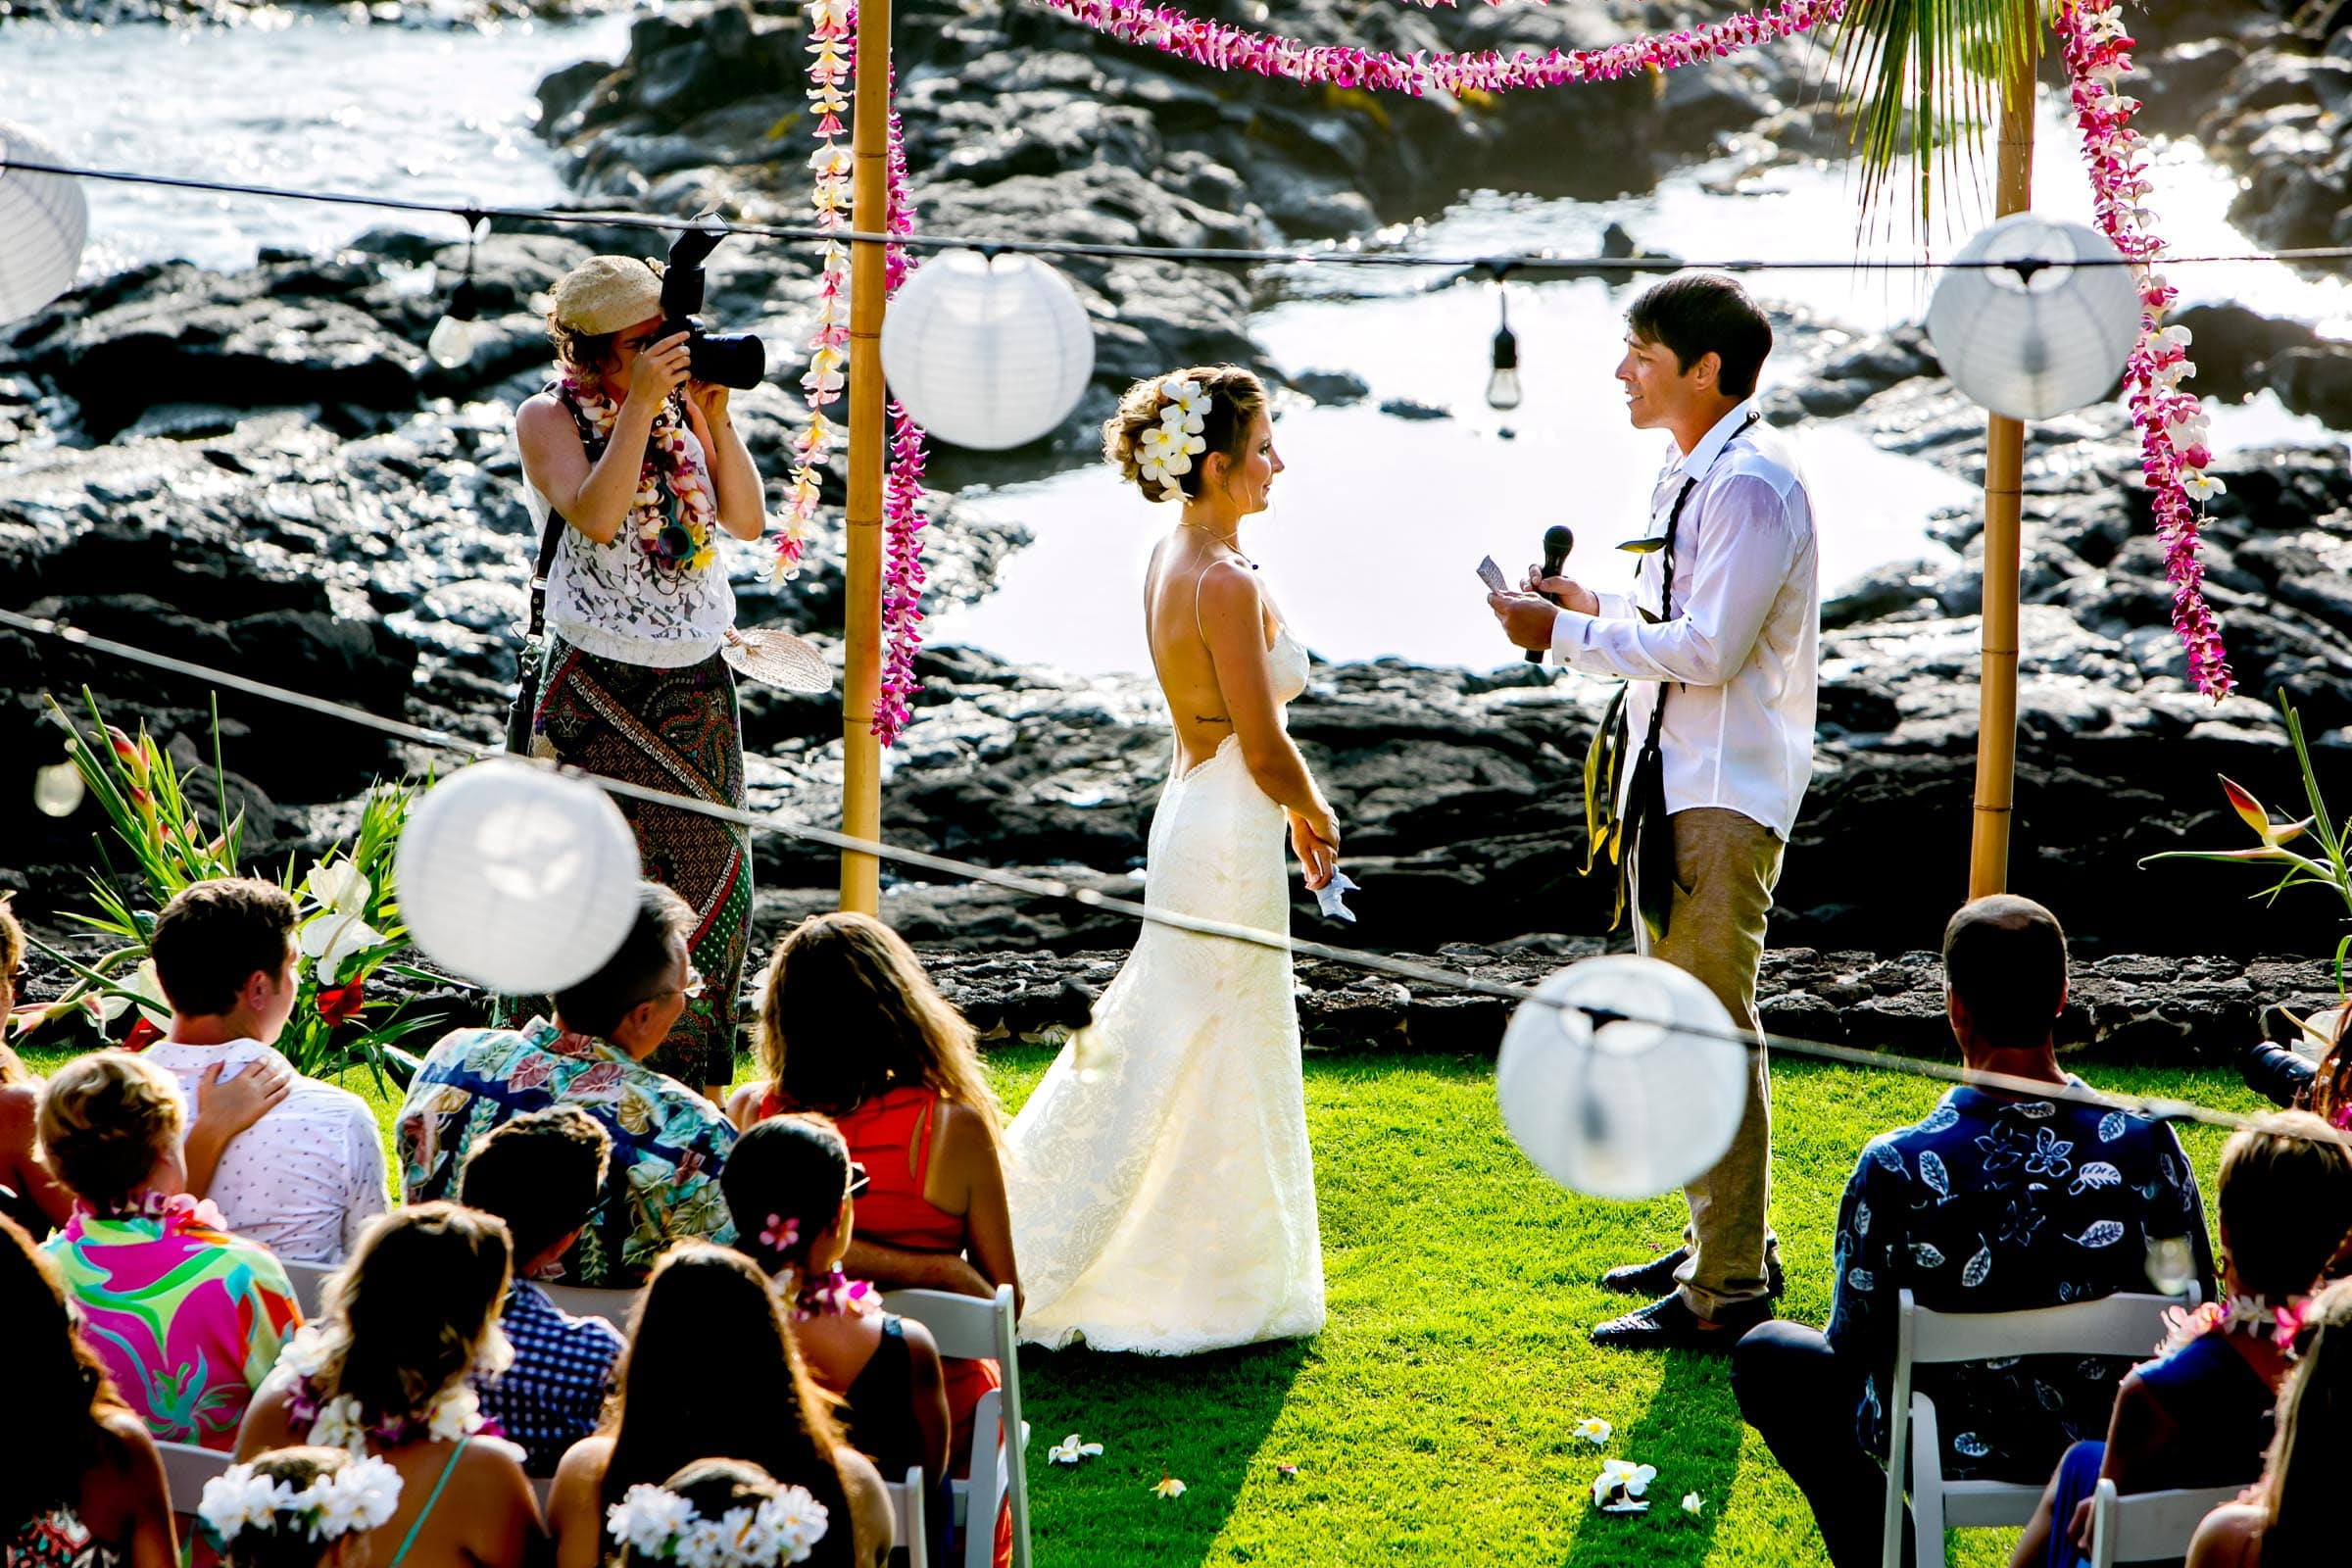 Groom saying his vows during a Kailua Kona Wedding at the Kona Beach Bungalows on the Big Island of Hawaii